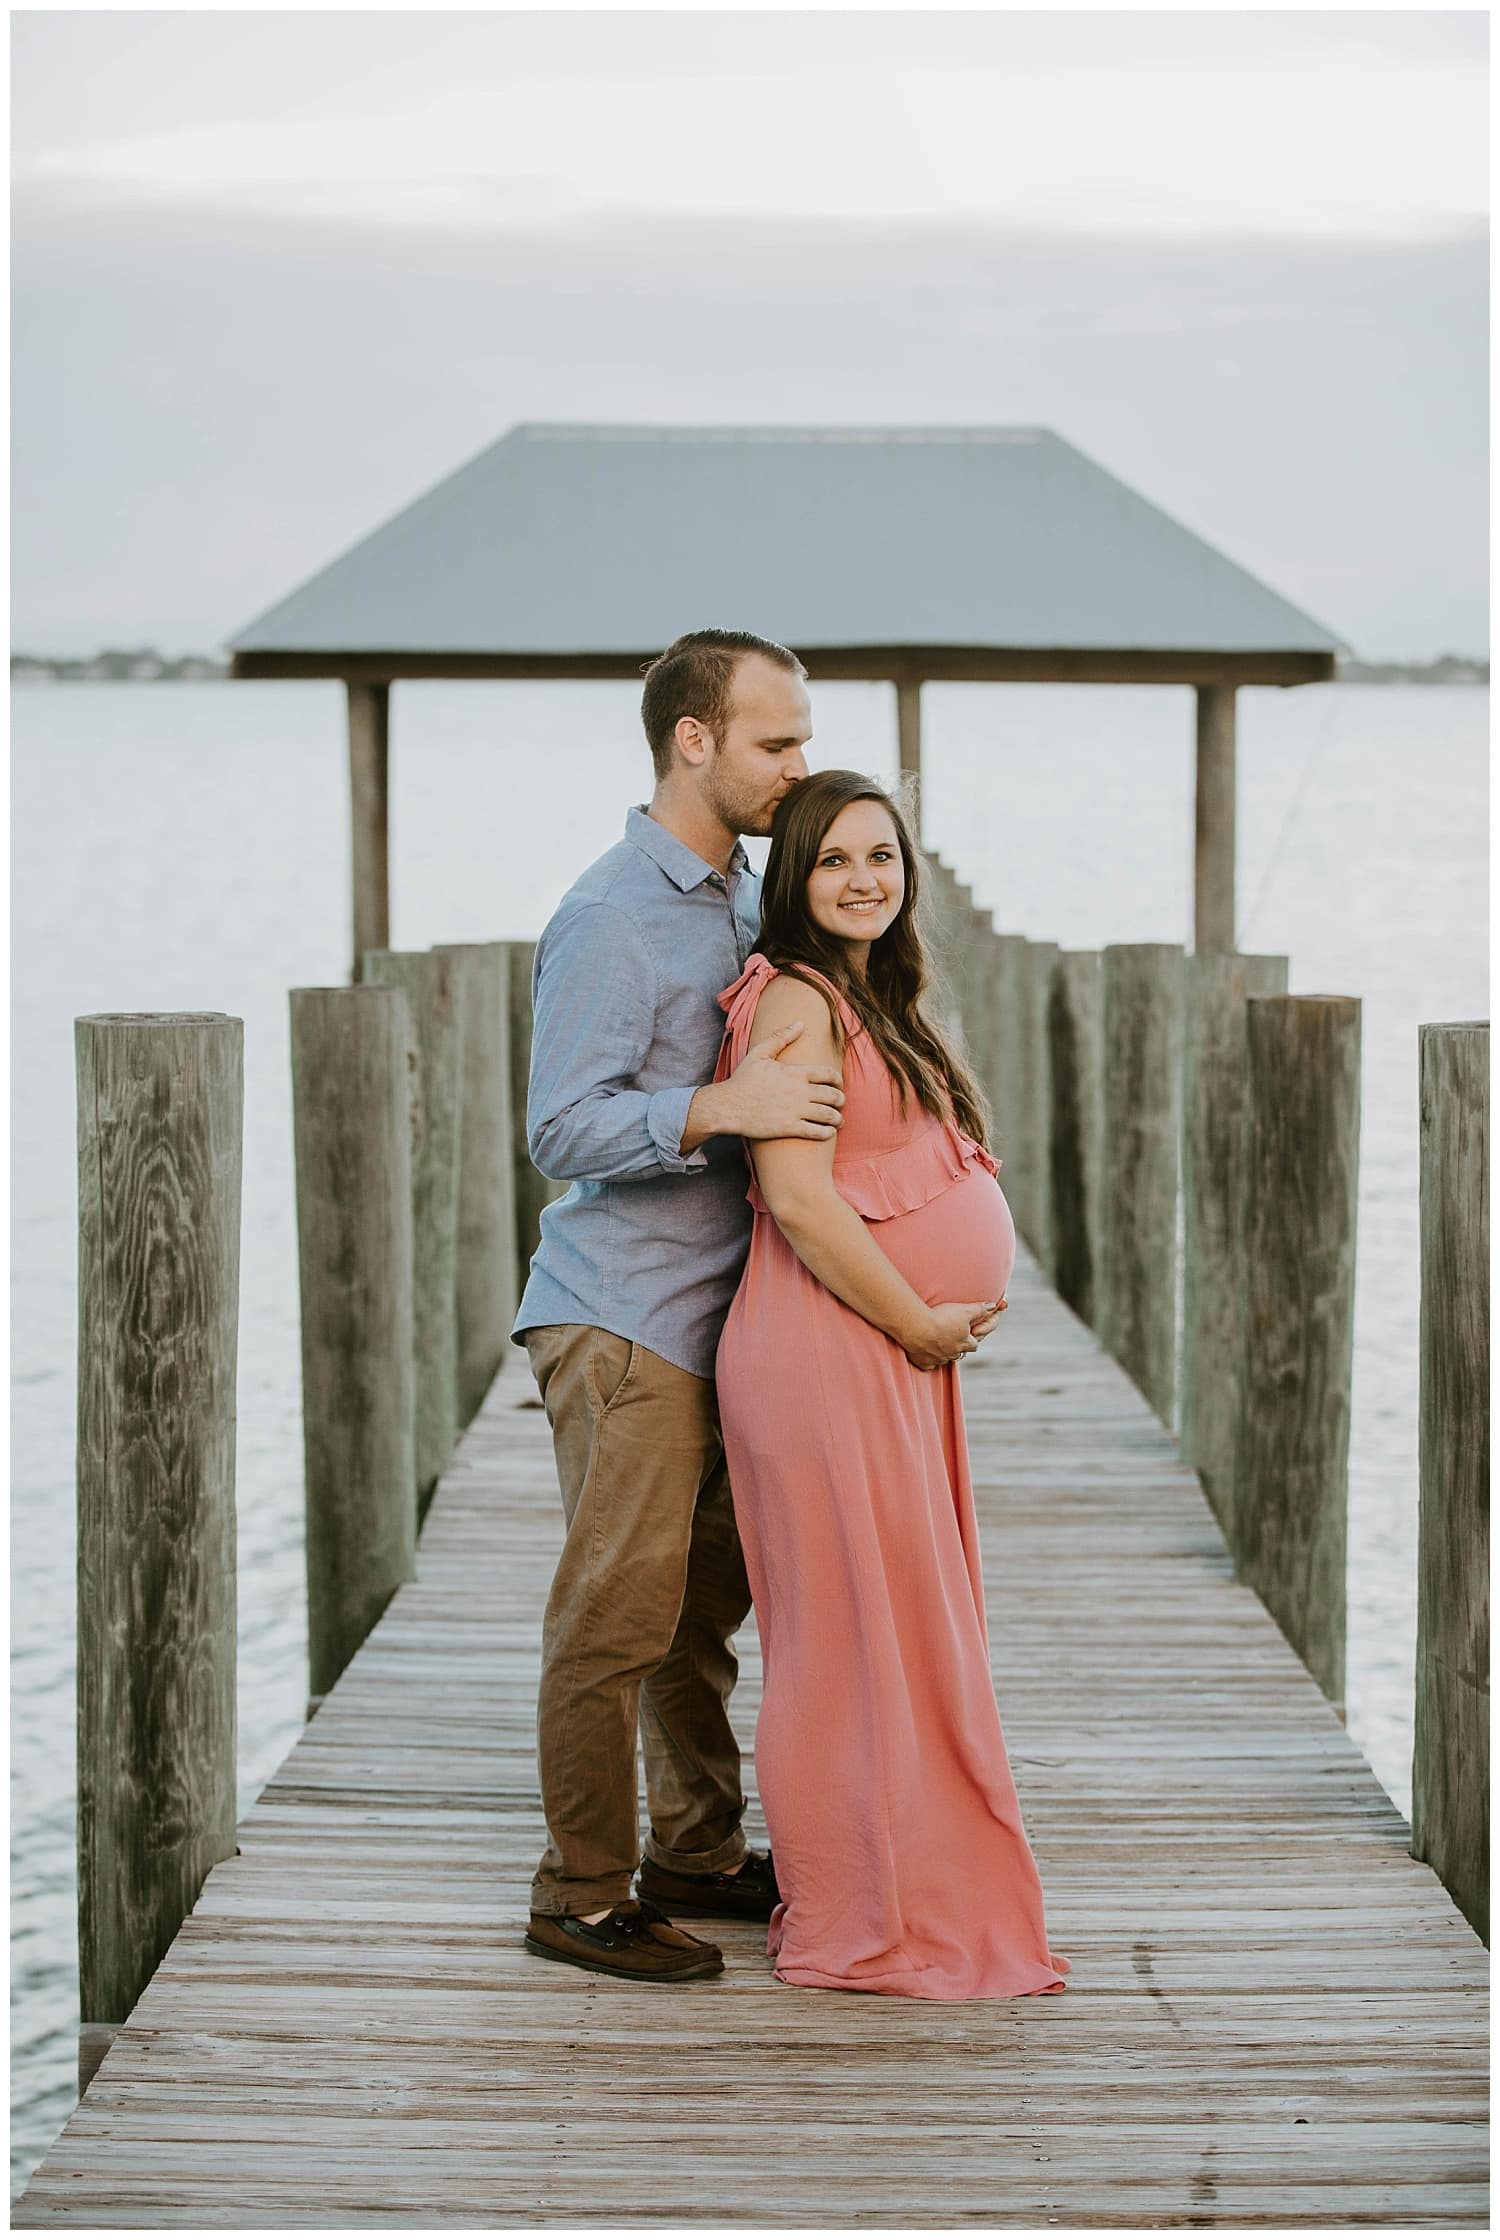 House of Refuge Maternity Photos_0006.jpg